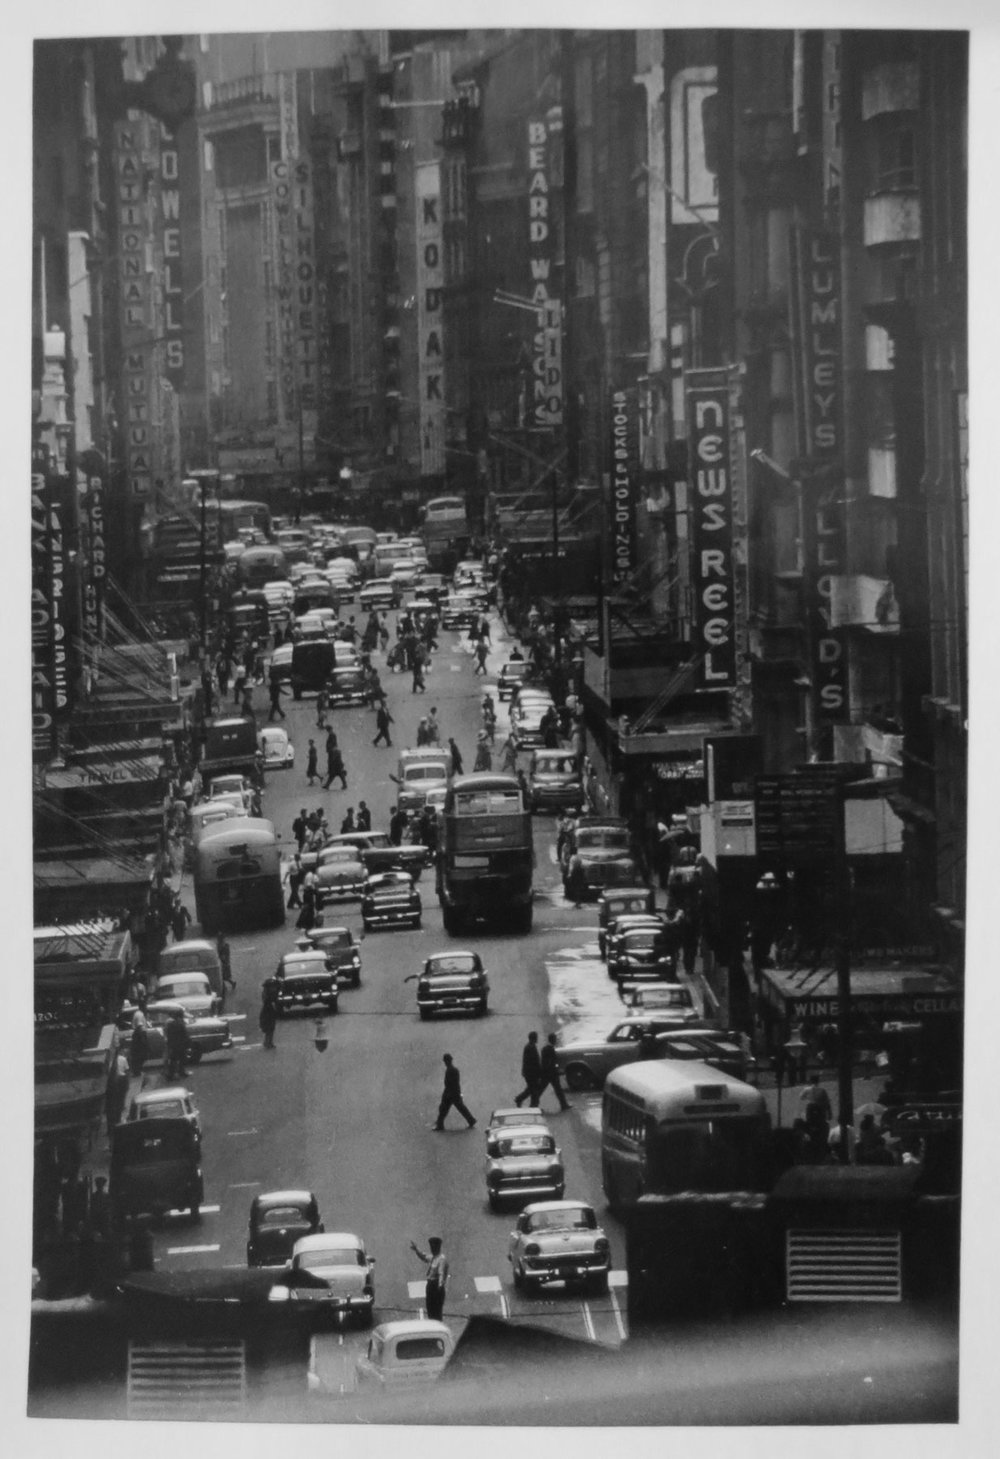 91. Richard Woldendorp, 'Cityscape, Sydney NSW', BW180, taken in 1961, printed in 2013